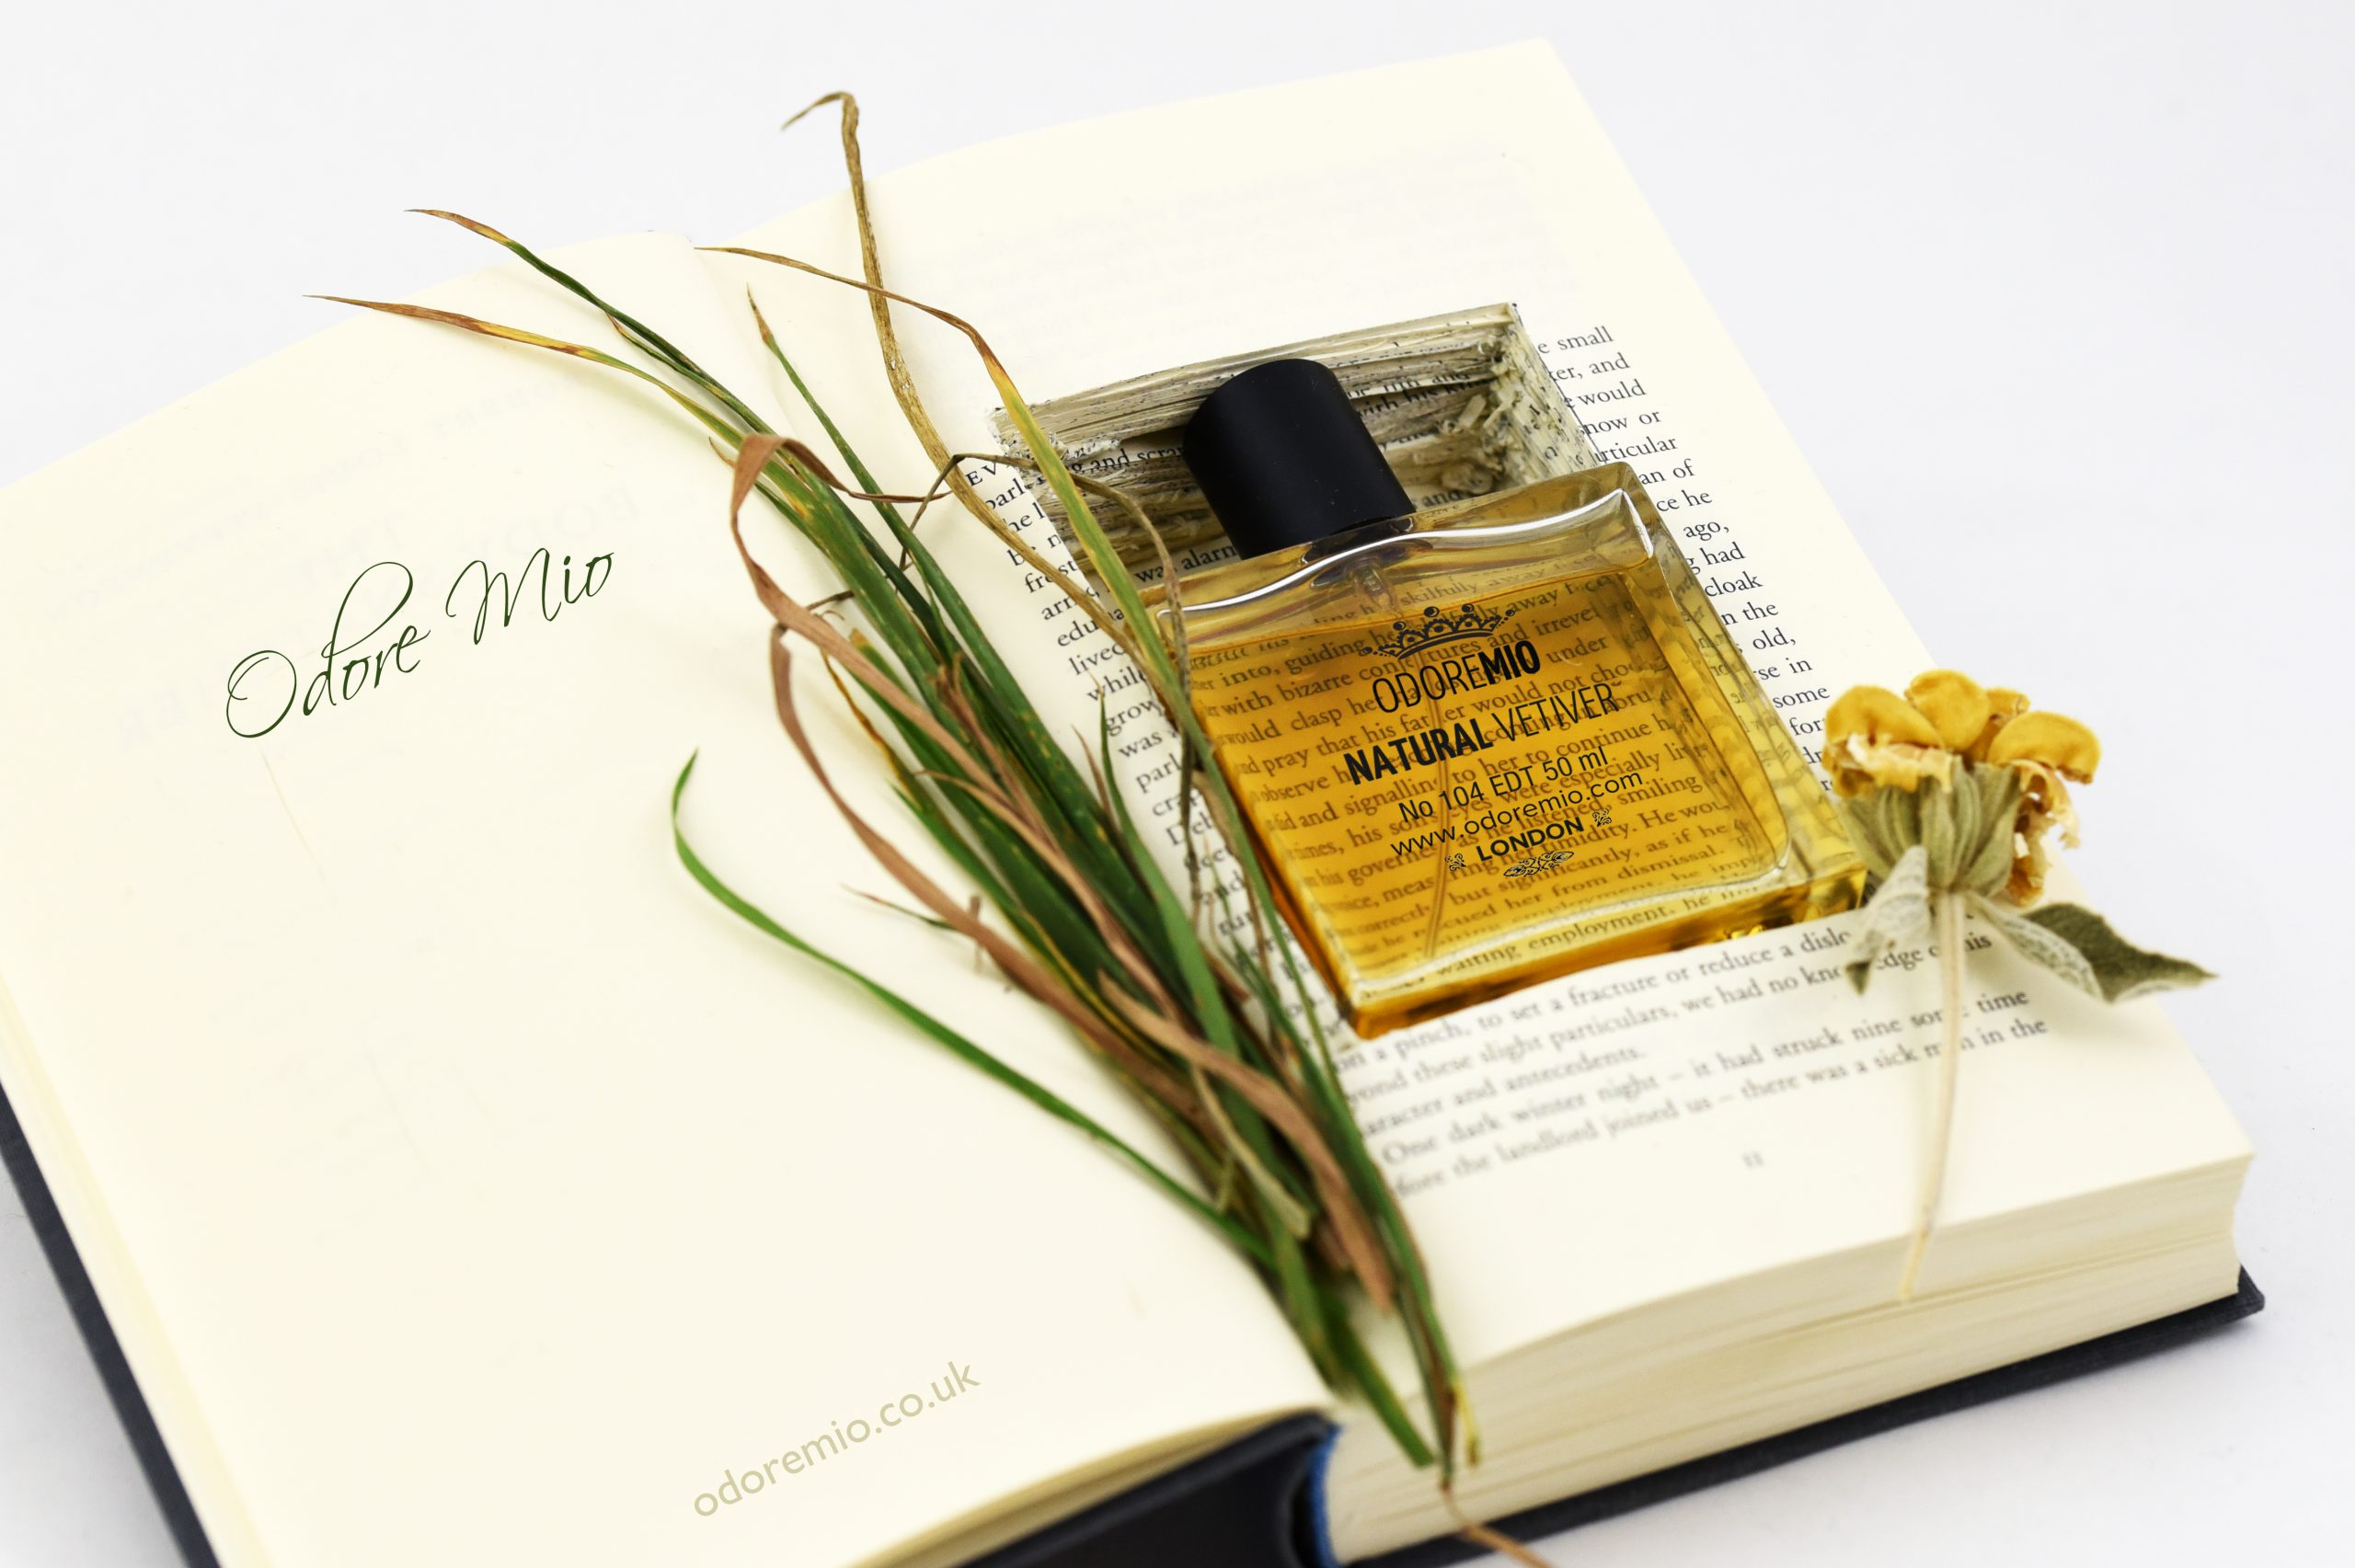 Odore Mio Natural Vetiver Perfume